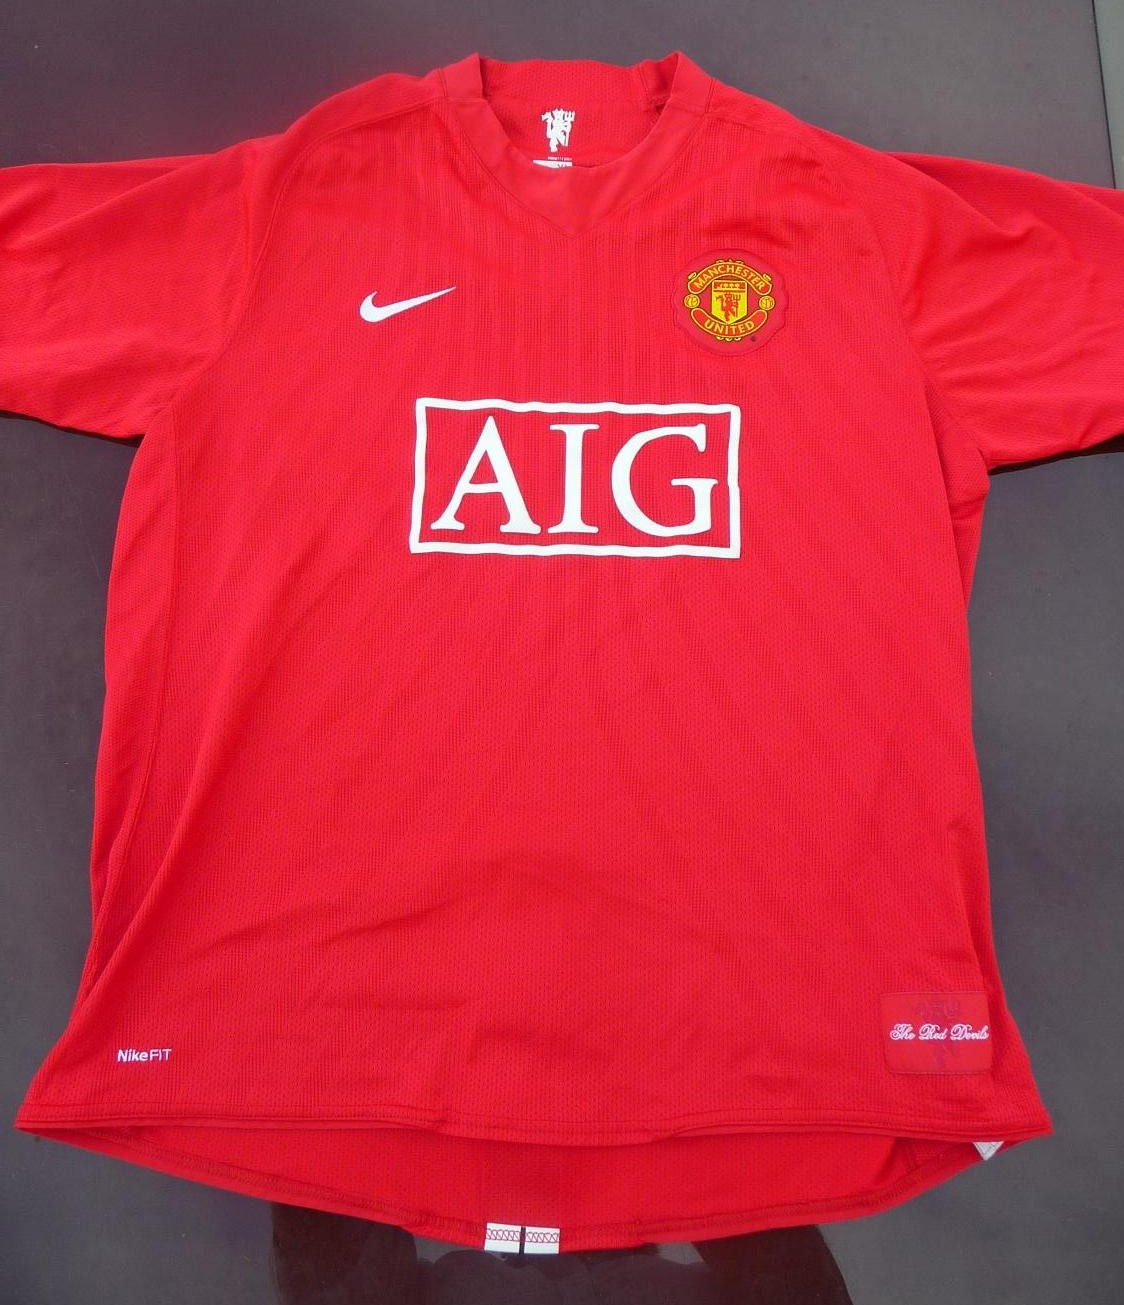 Manchester United Home football shirt 2007 - 2009. Sponsored by AIG